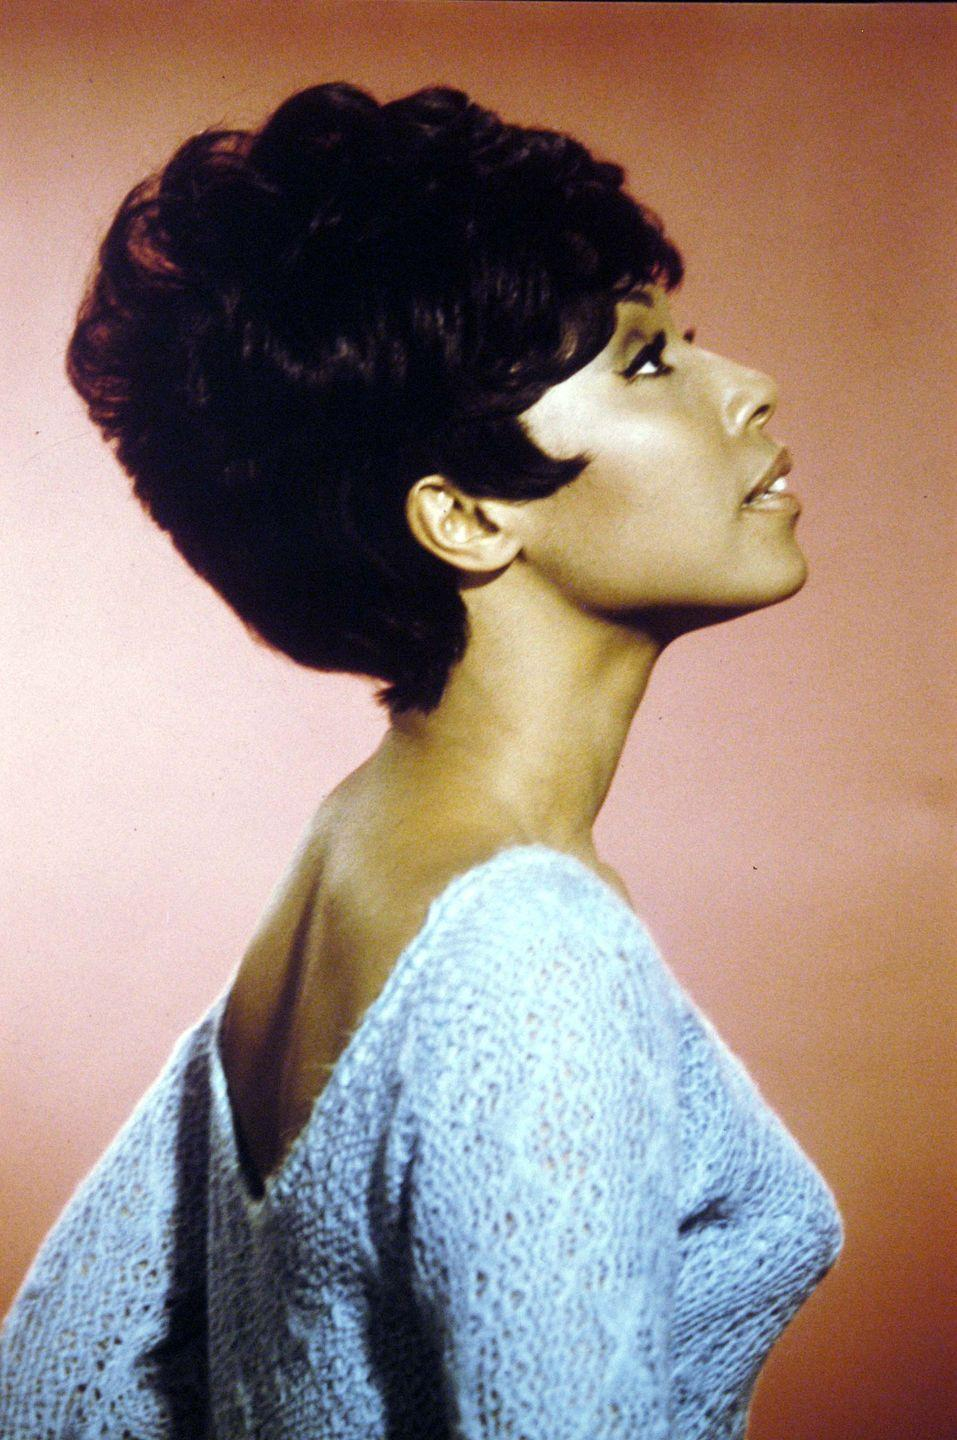 <p>Starring in Julia, a role that made her the first black actress to have her own TV show, Diahann Carroll helped propel this chic, voluminous style to popularity.</p>